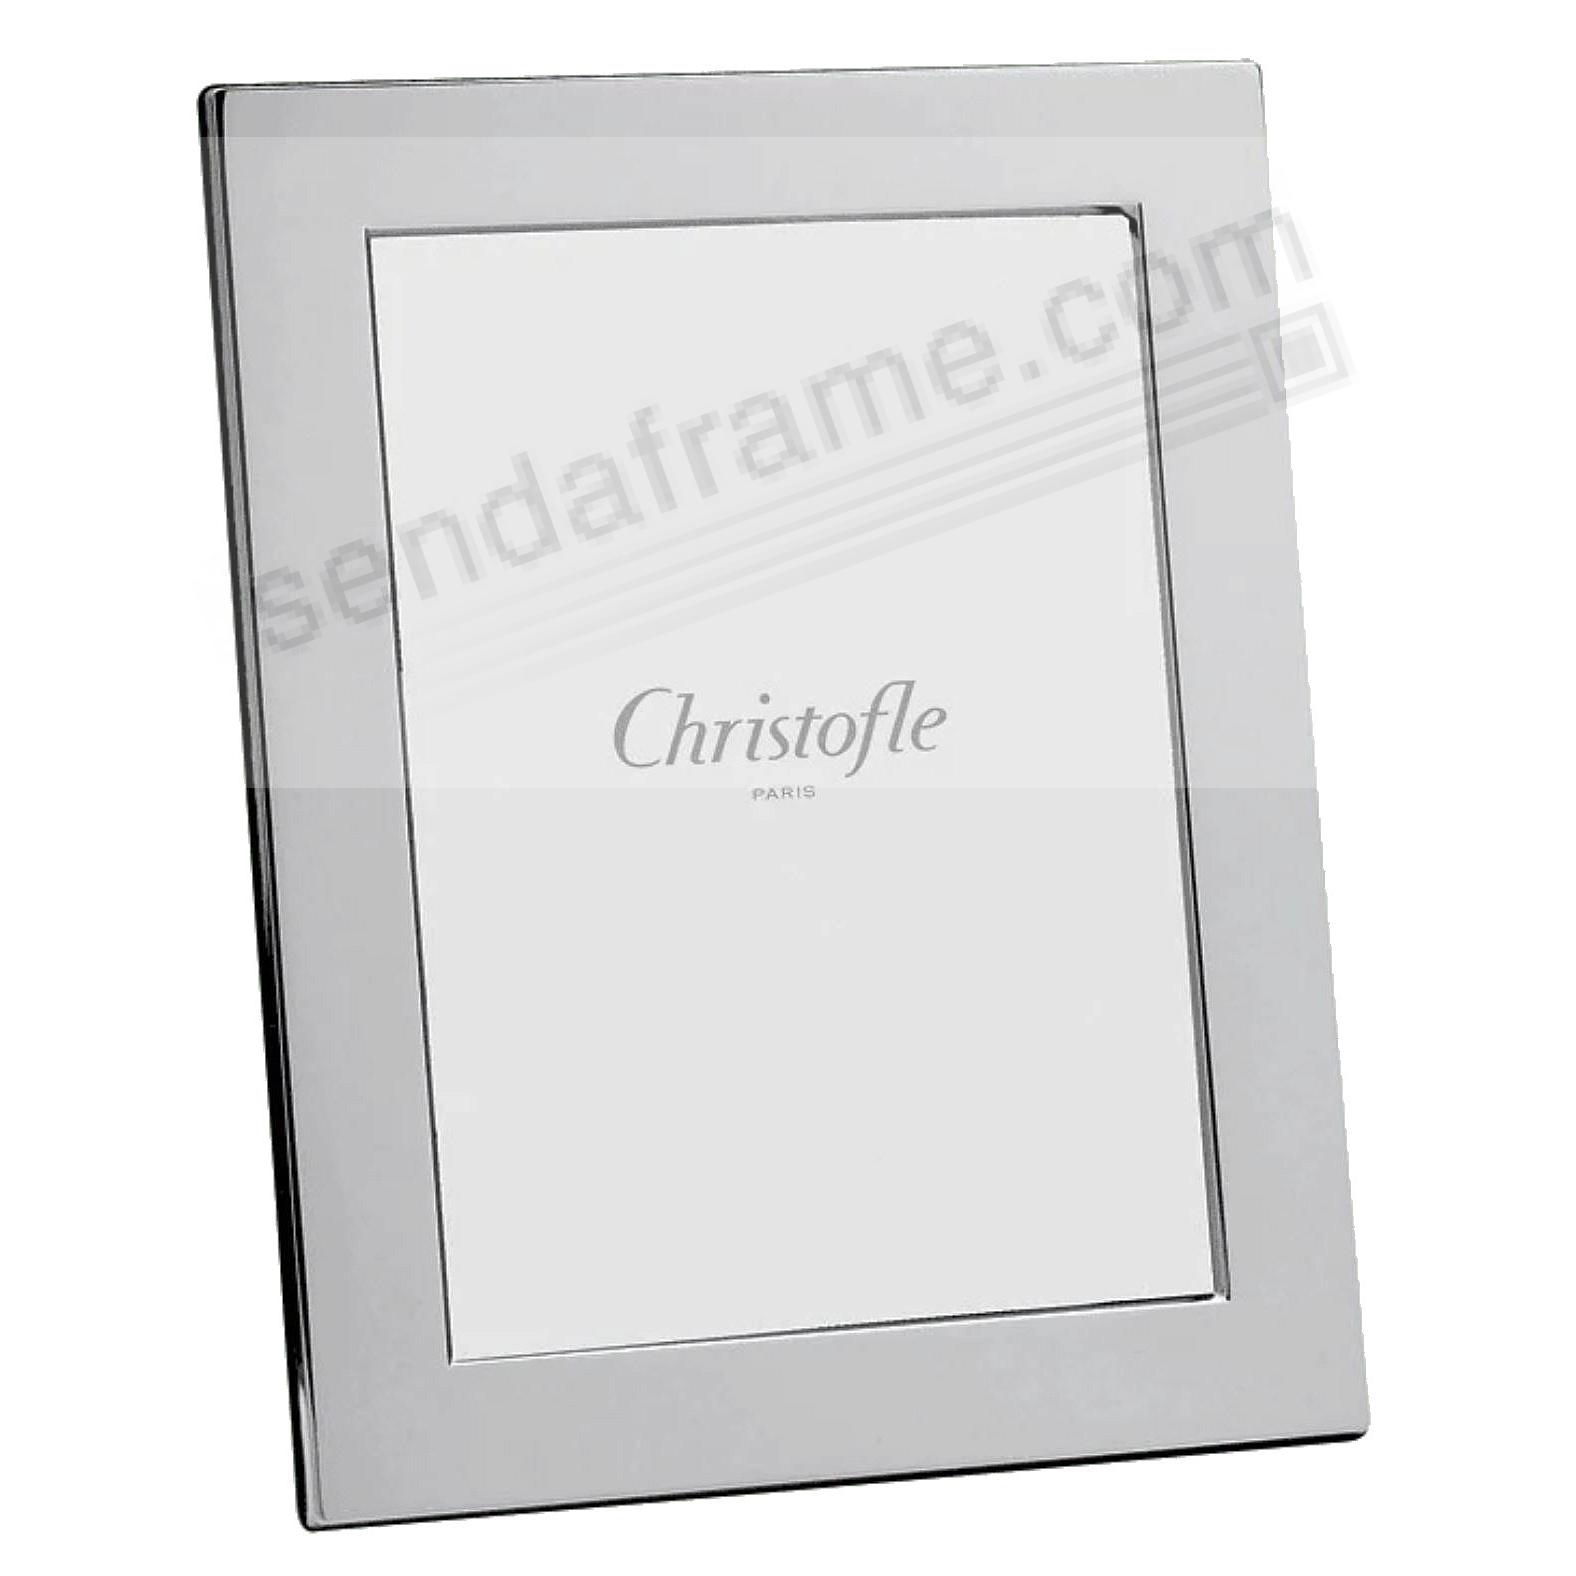 FIDELIO Silver-Plated 5x7 by Christofle Paris